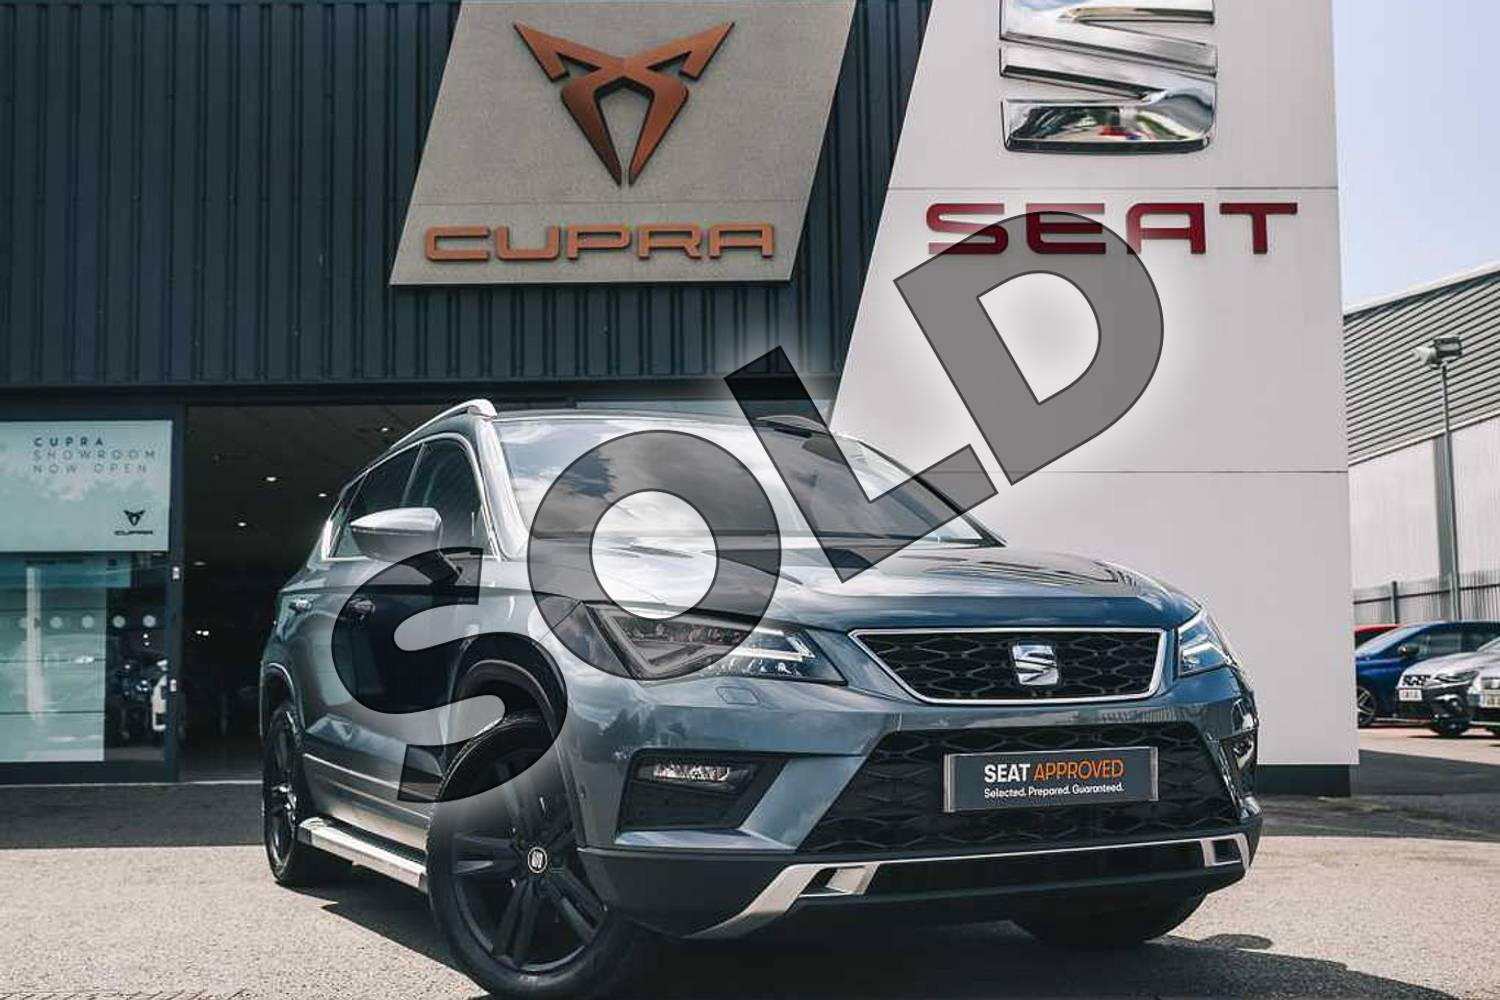 2018 SEAT Ateca Estate 1.0 TSI SE L (EZ) 5dr in Grey at Listers SEAT Coventry